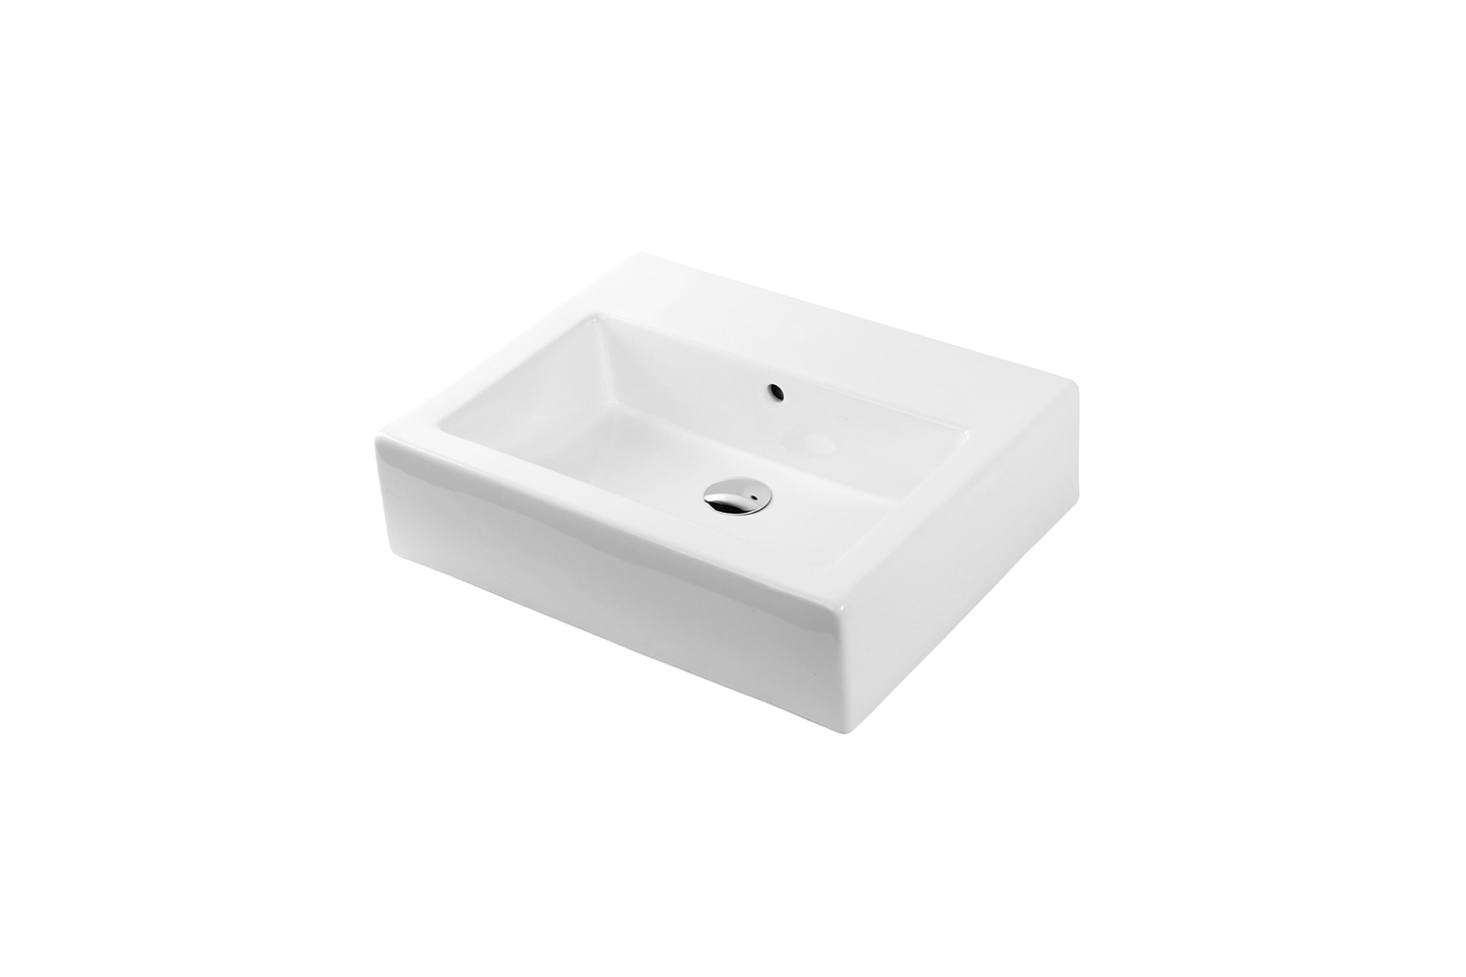 The Lacava Aquagrande Wall-Mount Sink #5464 is available at Lacava directly; contact for price and ordering information.